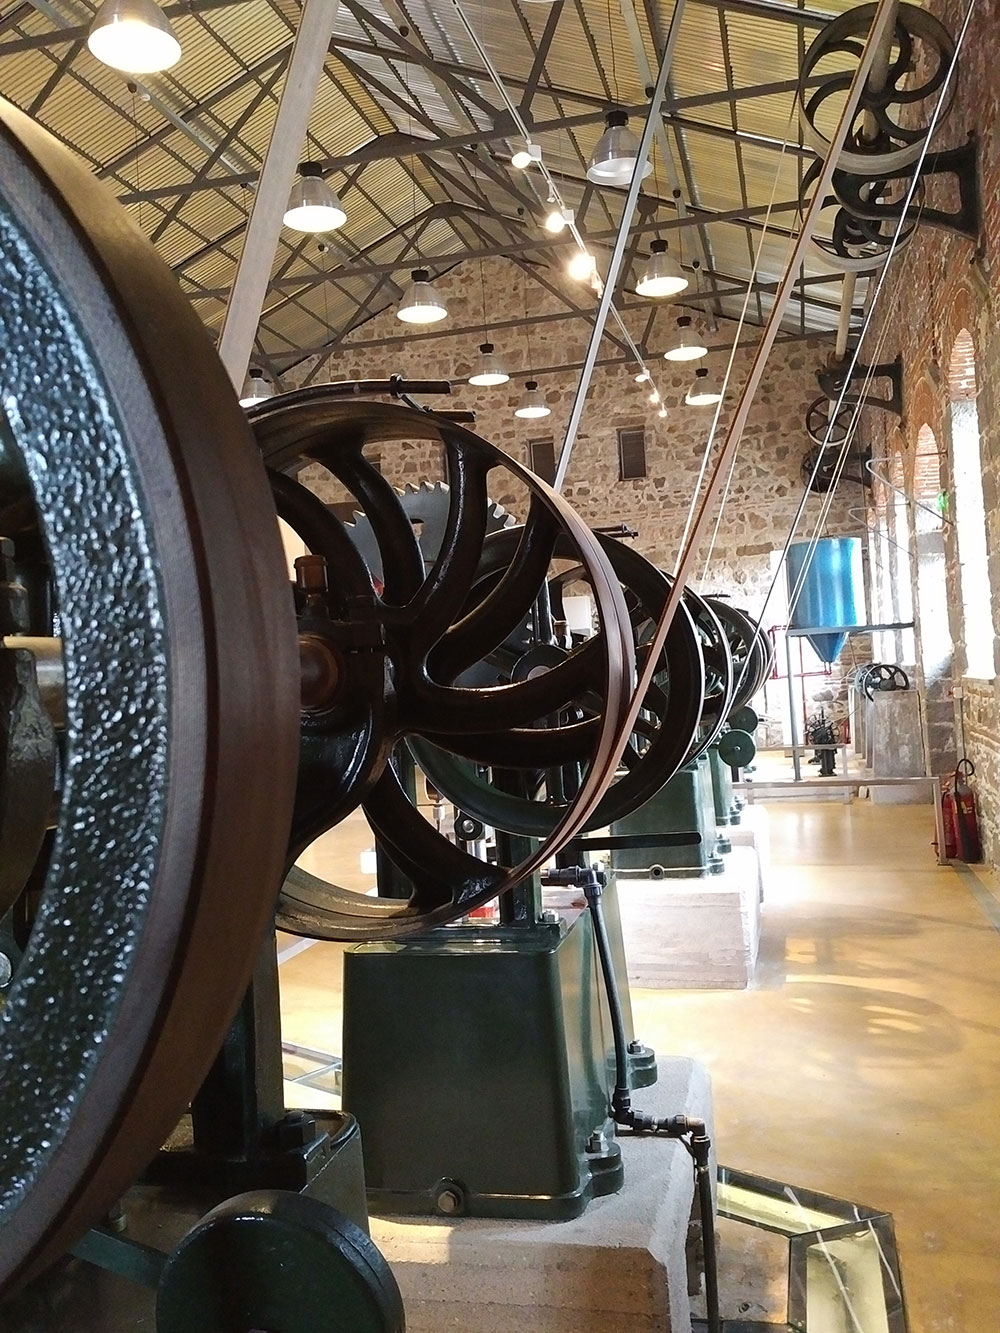 At the community olive oil mill — these steam-powered machines turn cogs to move belts and pulleys and provide power to the olive presses